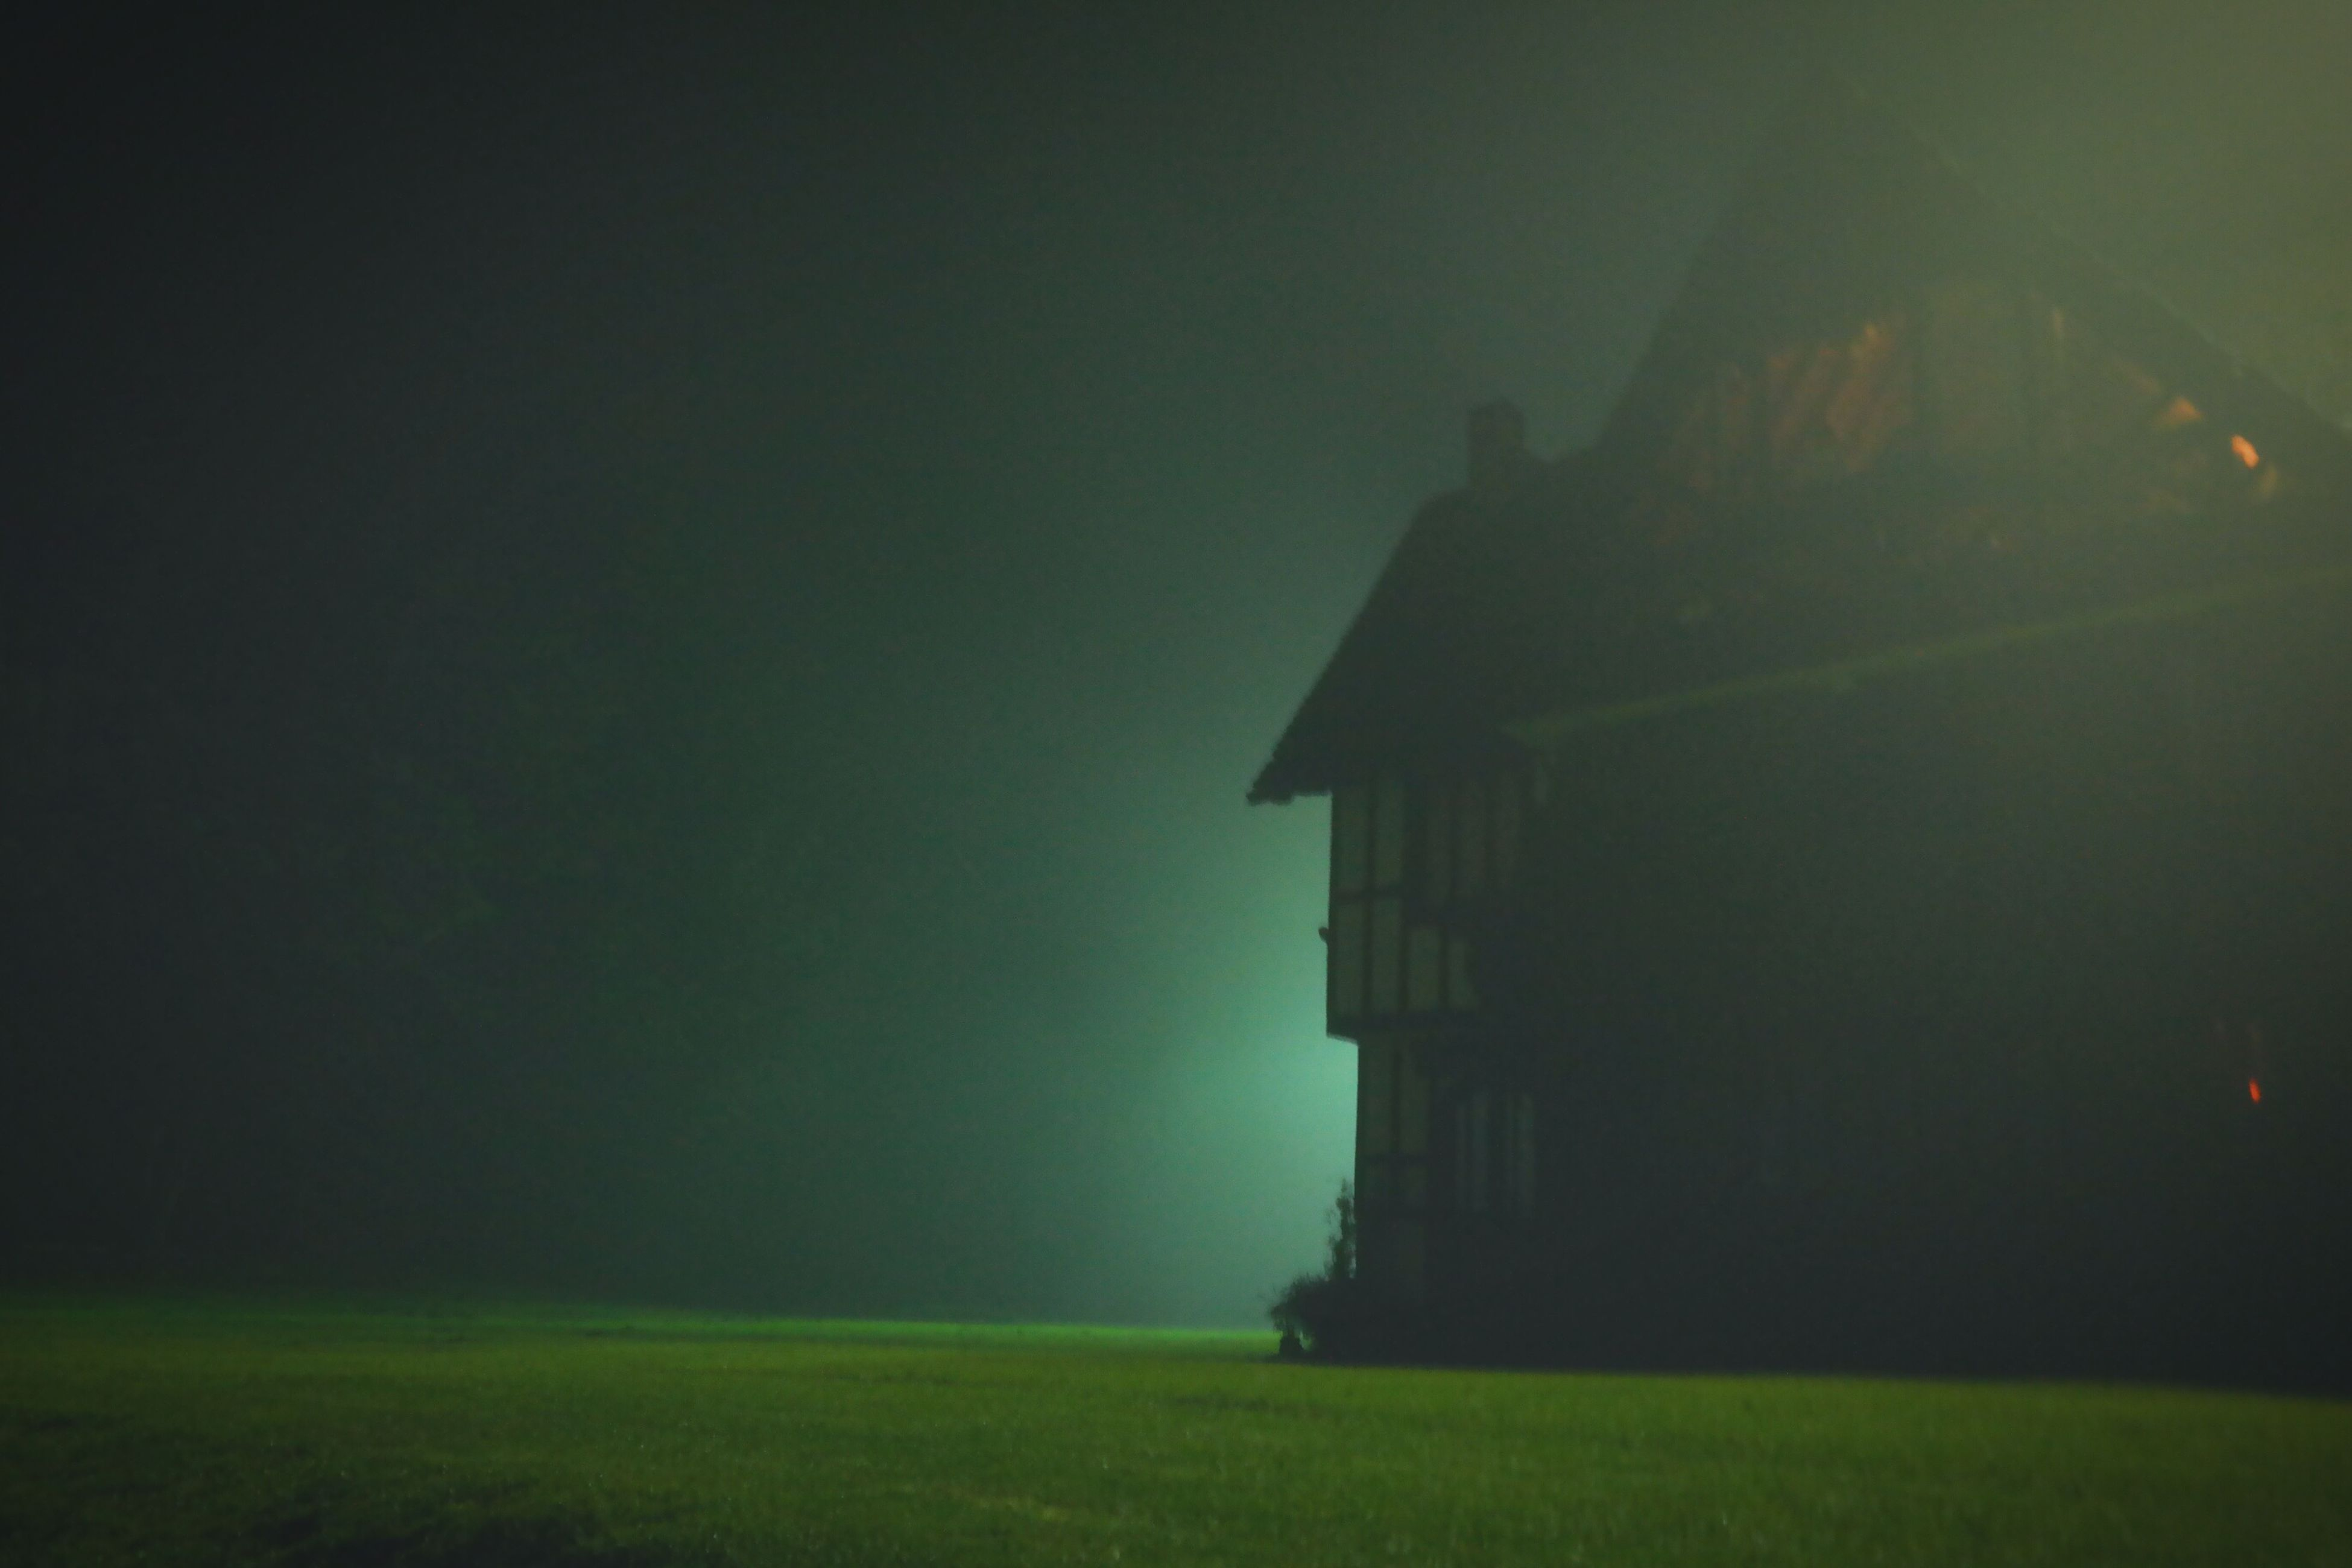 building exterior, architecture, built structure, grass, night, field, sky, copy space, dusk, house, green color, illuminated, landscape, outdoors, nature, no people, residential structure, clear sky, tranquility, grassy